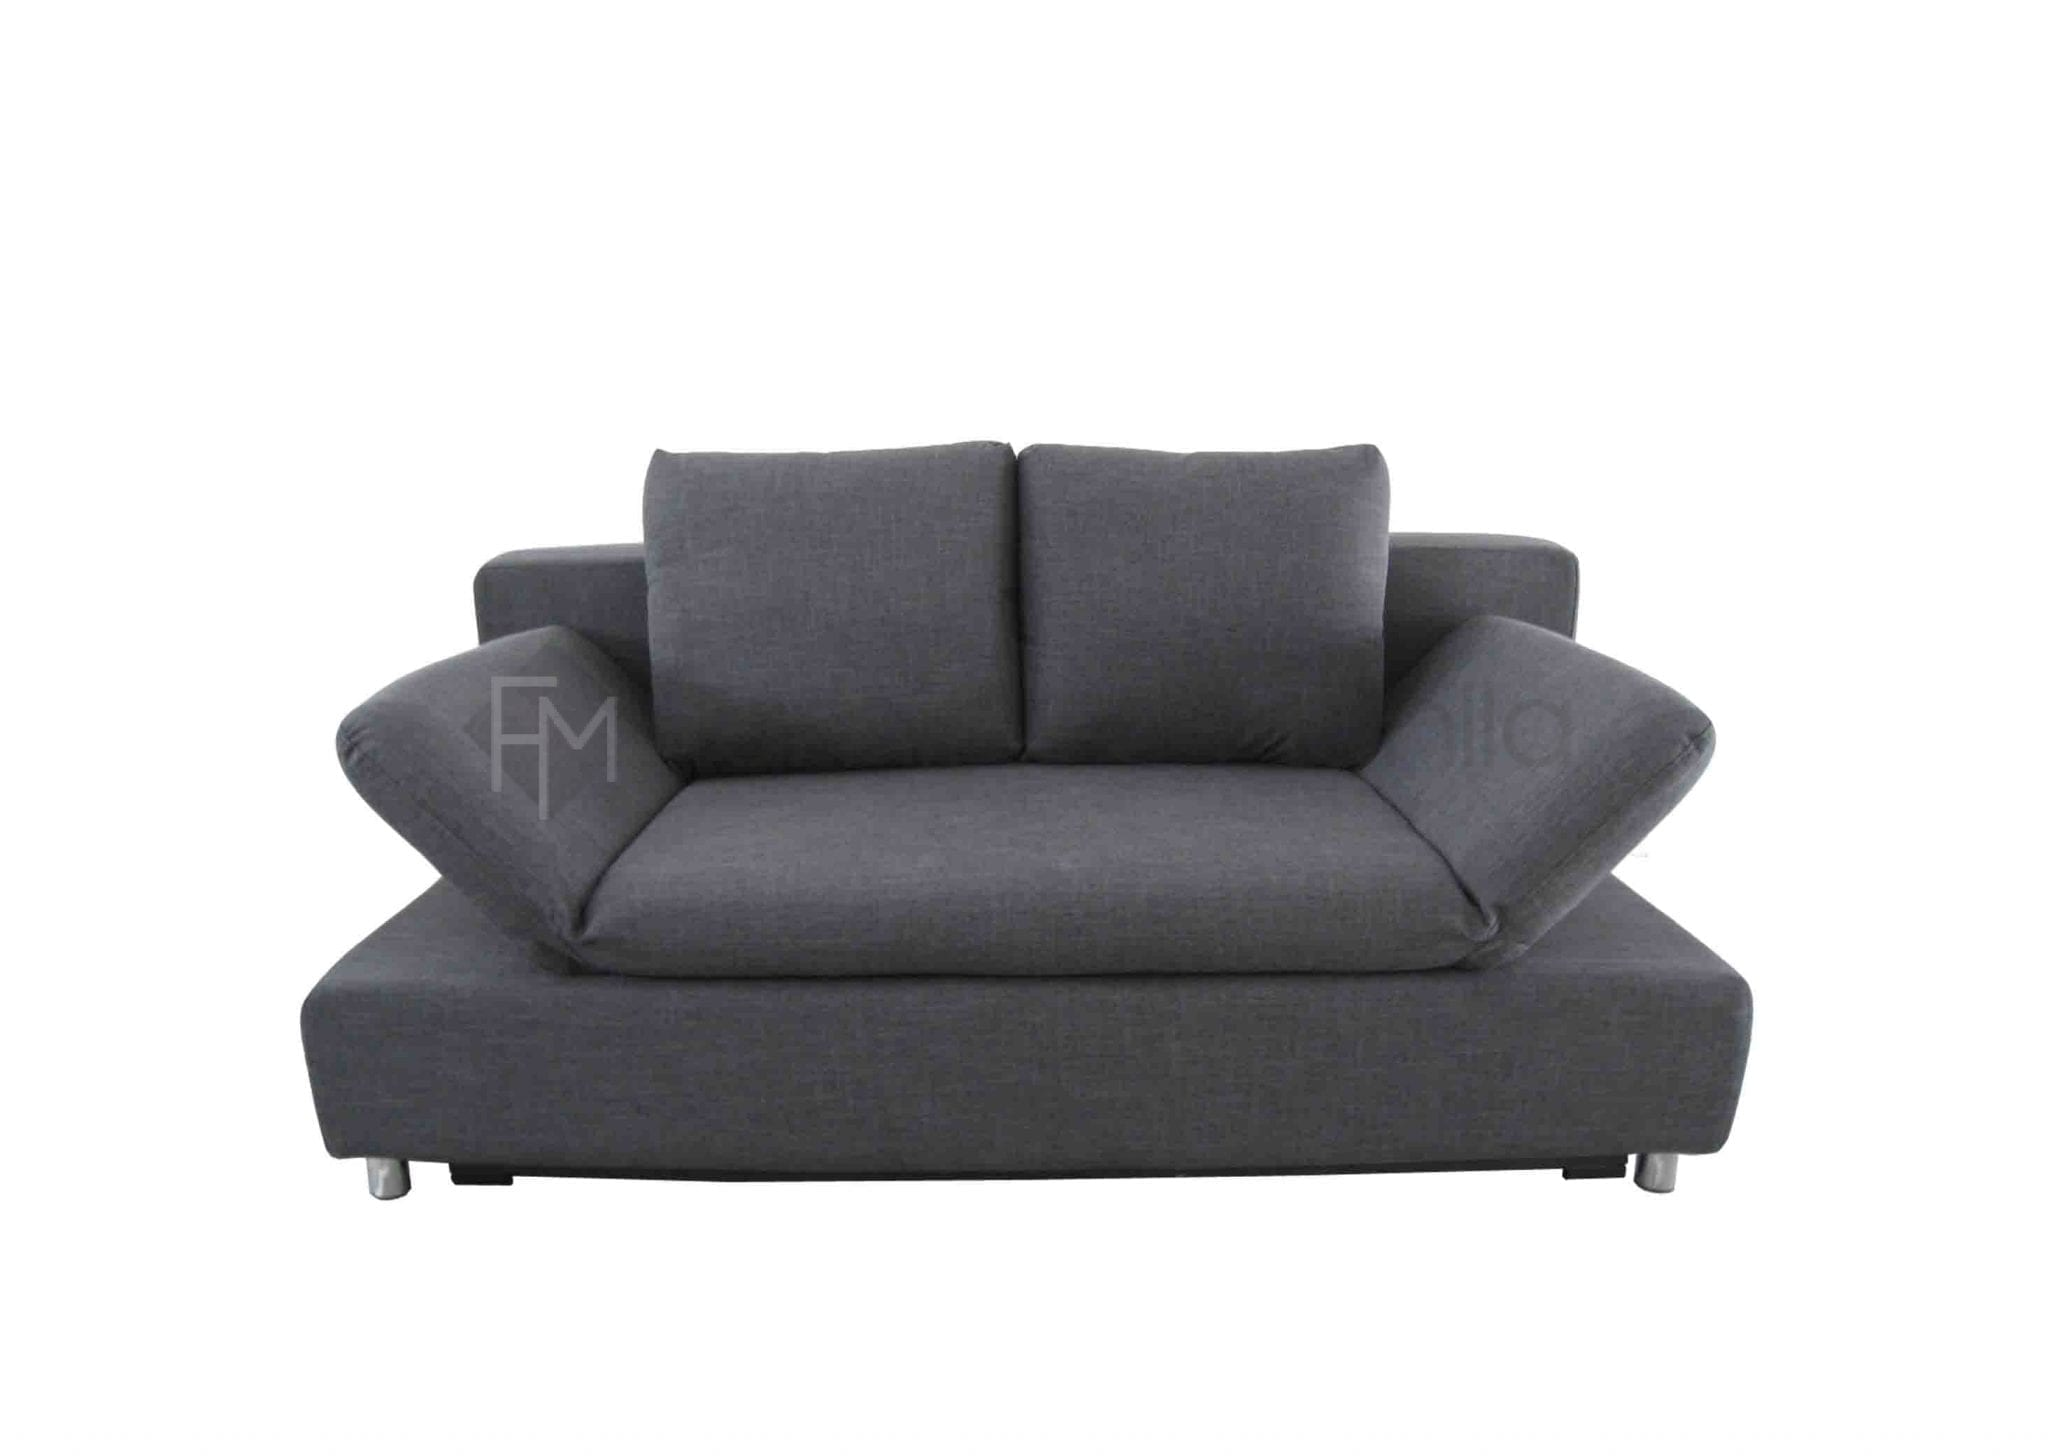 Sofa Bed For Sale Tarlac A077 Sofabed Home Office Furniture Philippines